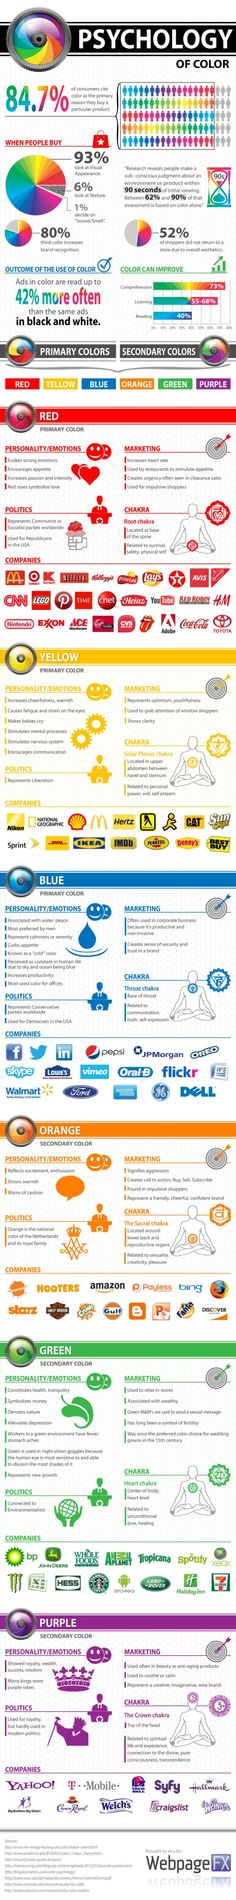 Psychology of Color [INFOGRAPHIC] #psychology #color